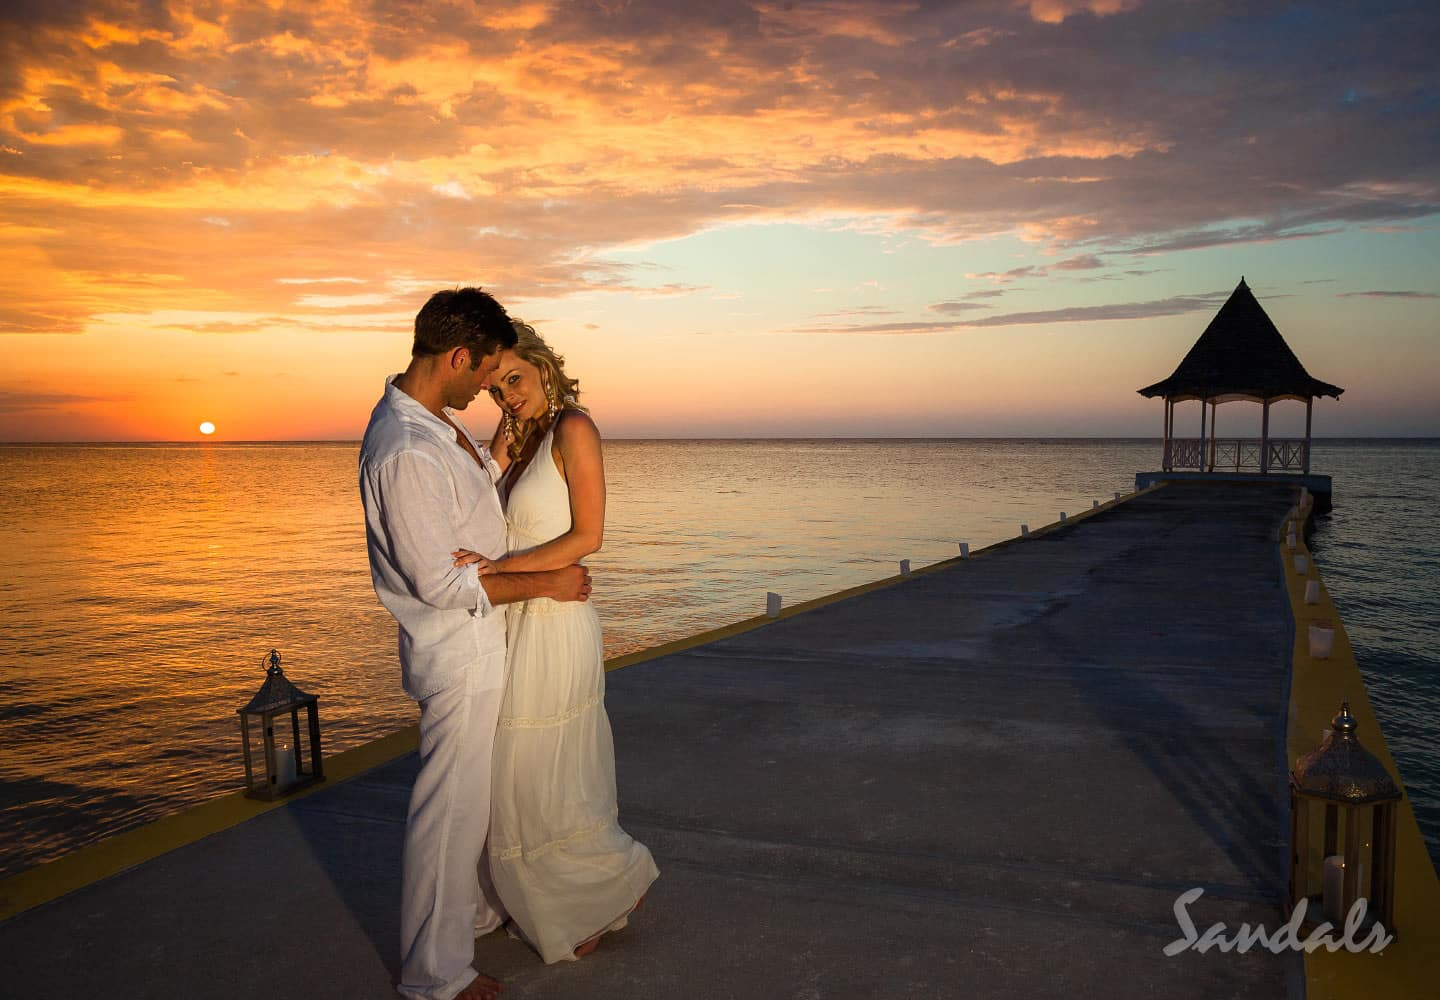 a couple celebrating their honeymoon at sandals montego bay in jamaica on their luxury honeymoon